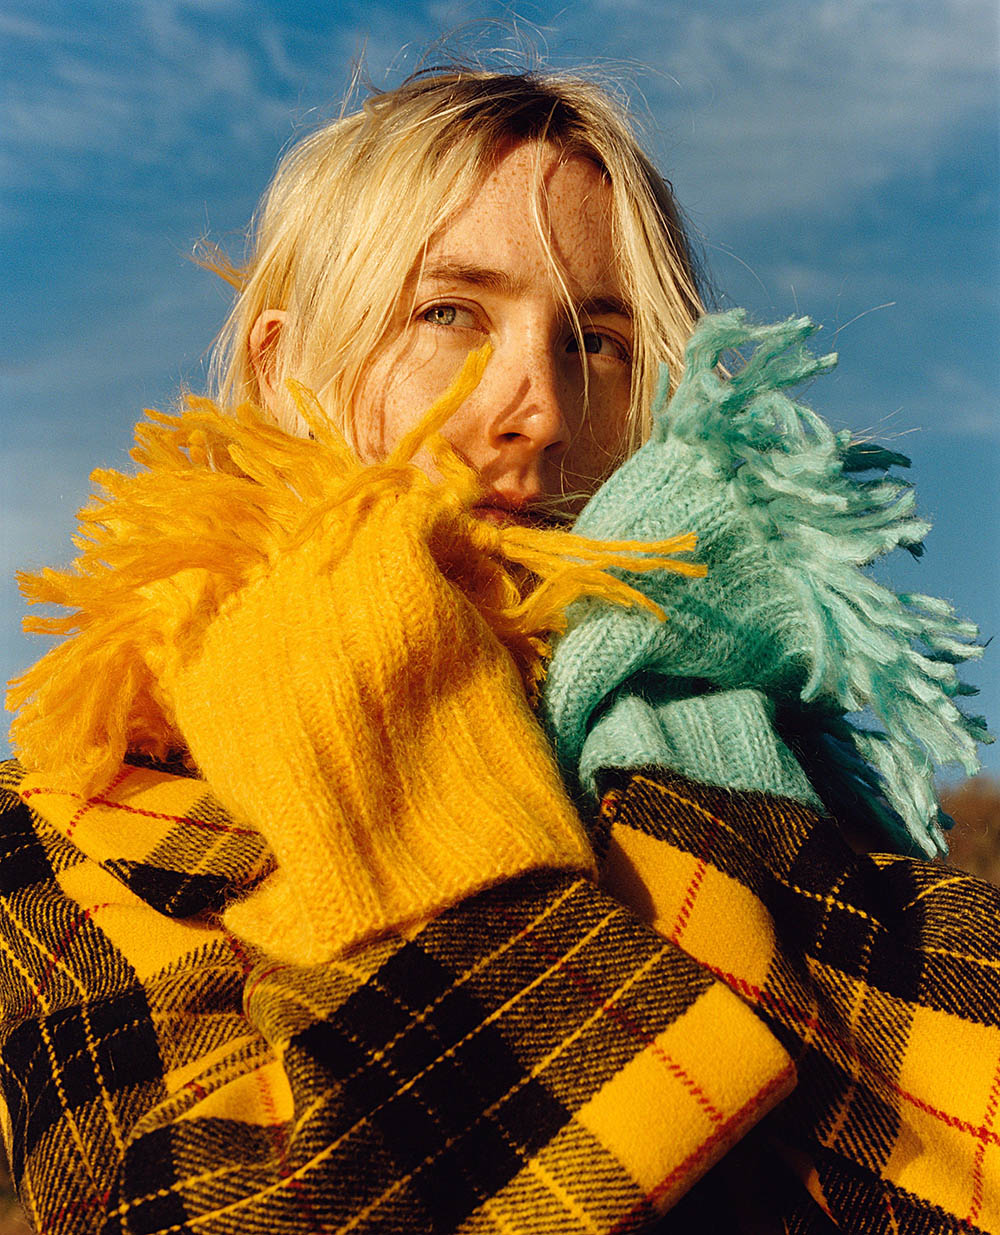 Saoirse Ronan covers Vogue US August 2018 by Jamie Hawkesworth